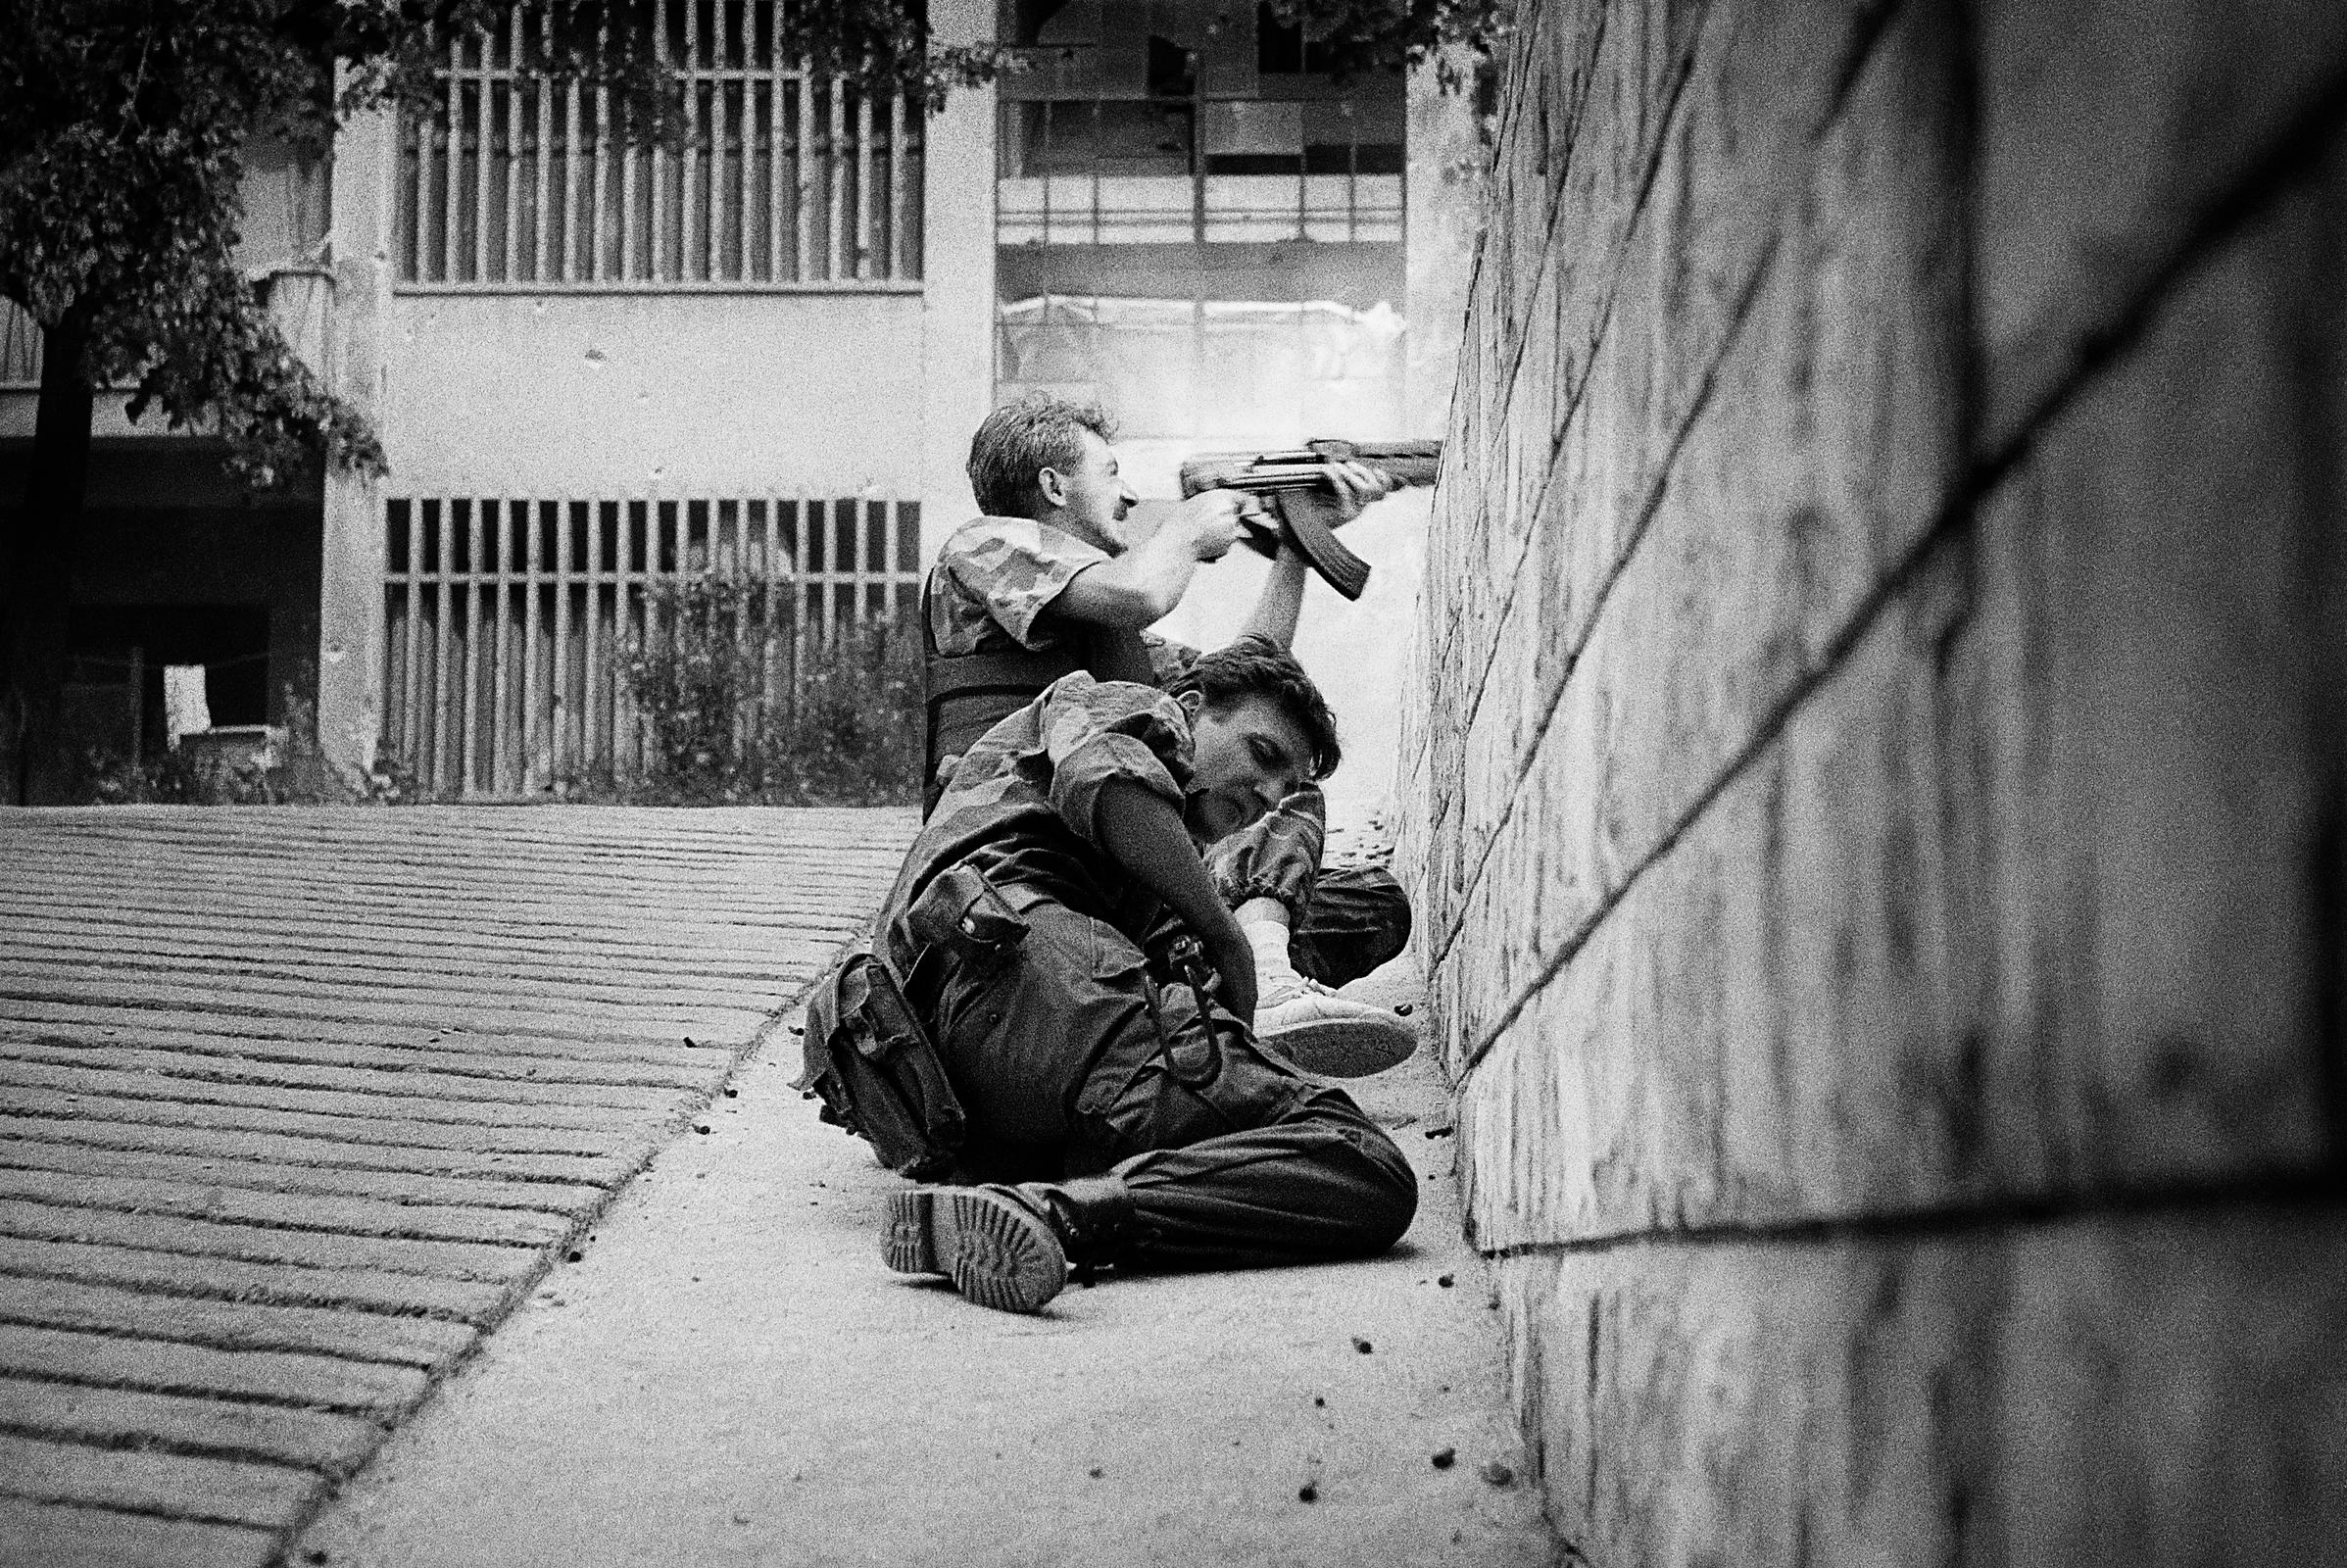 Mostar, Bosnian war, June 1993.